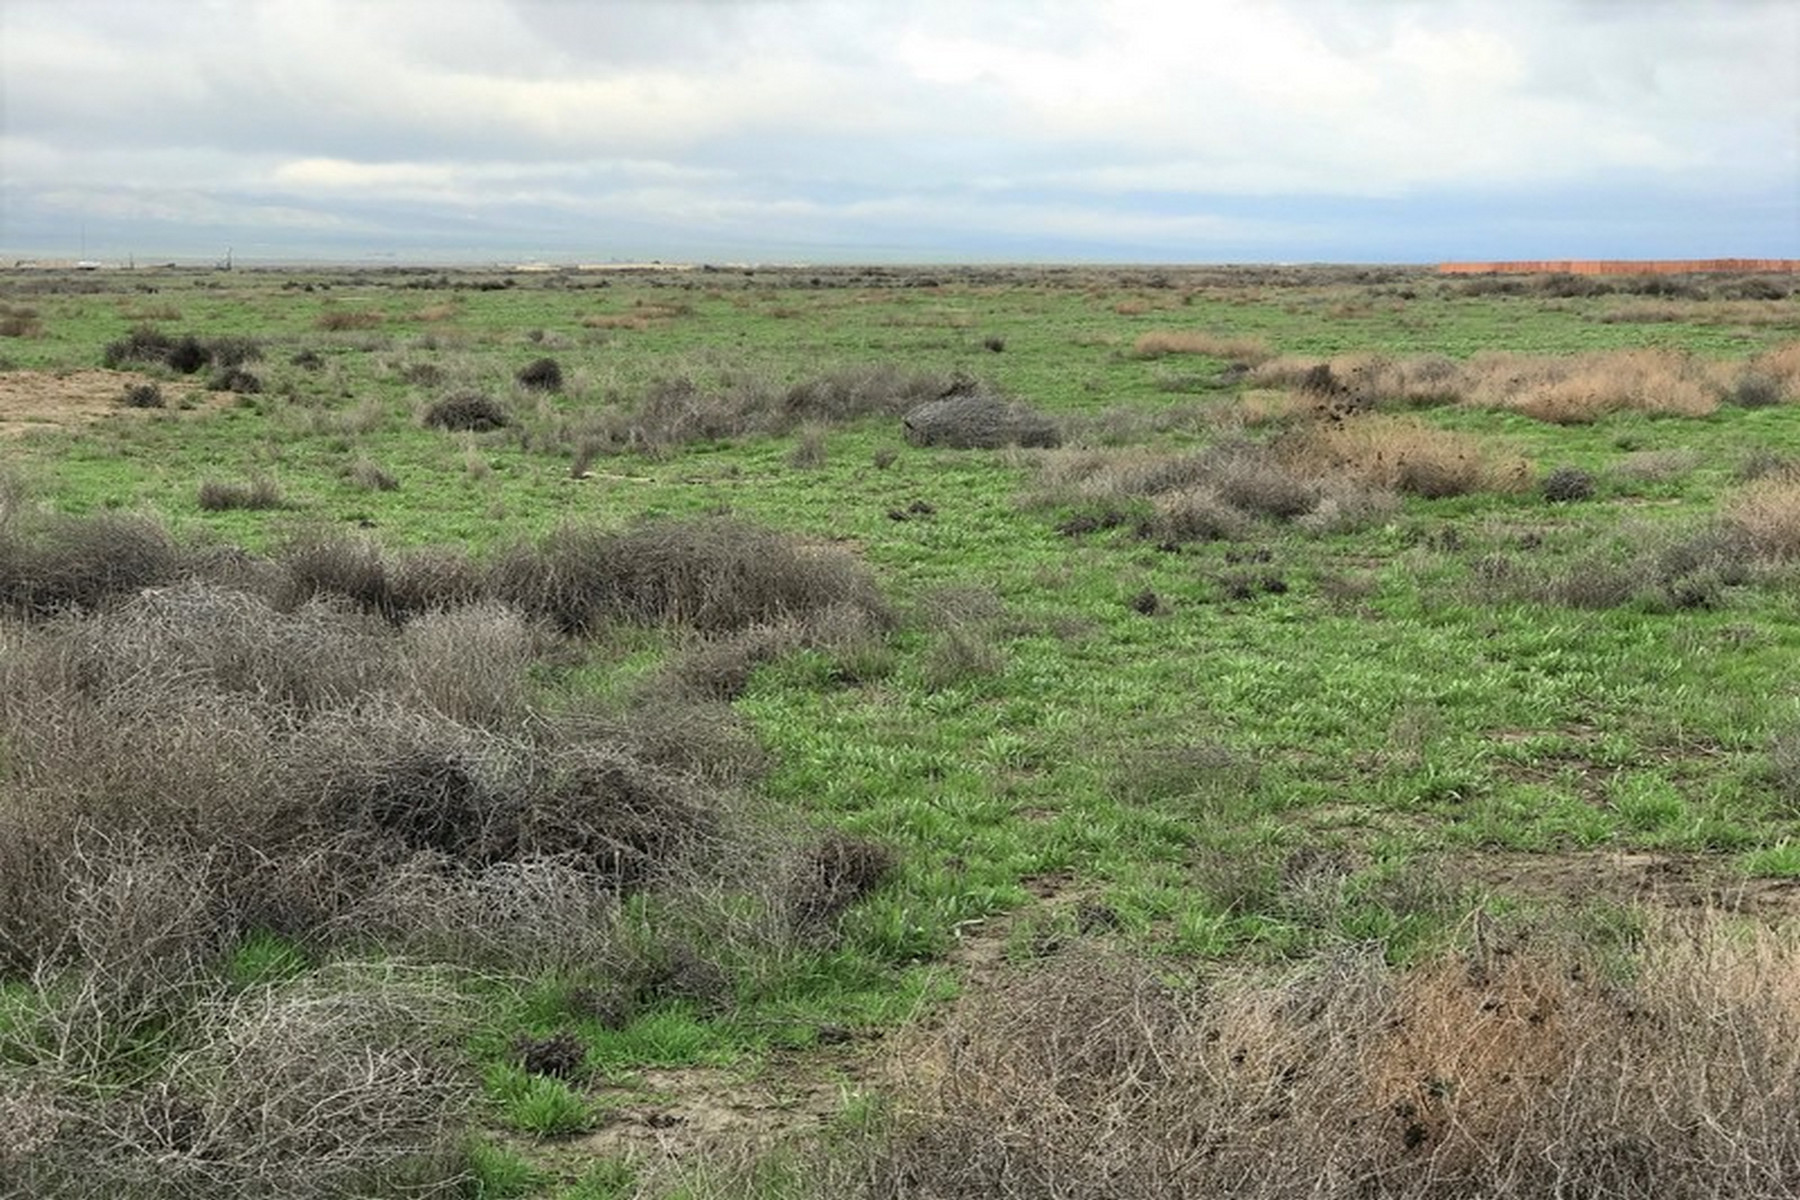 Terreno per Vendita alle ore 2.5 Acres In California Valley Chowchilla Trail, Santa Margarita, California, 93455 Stati Uniti